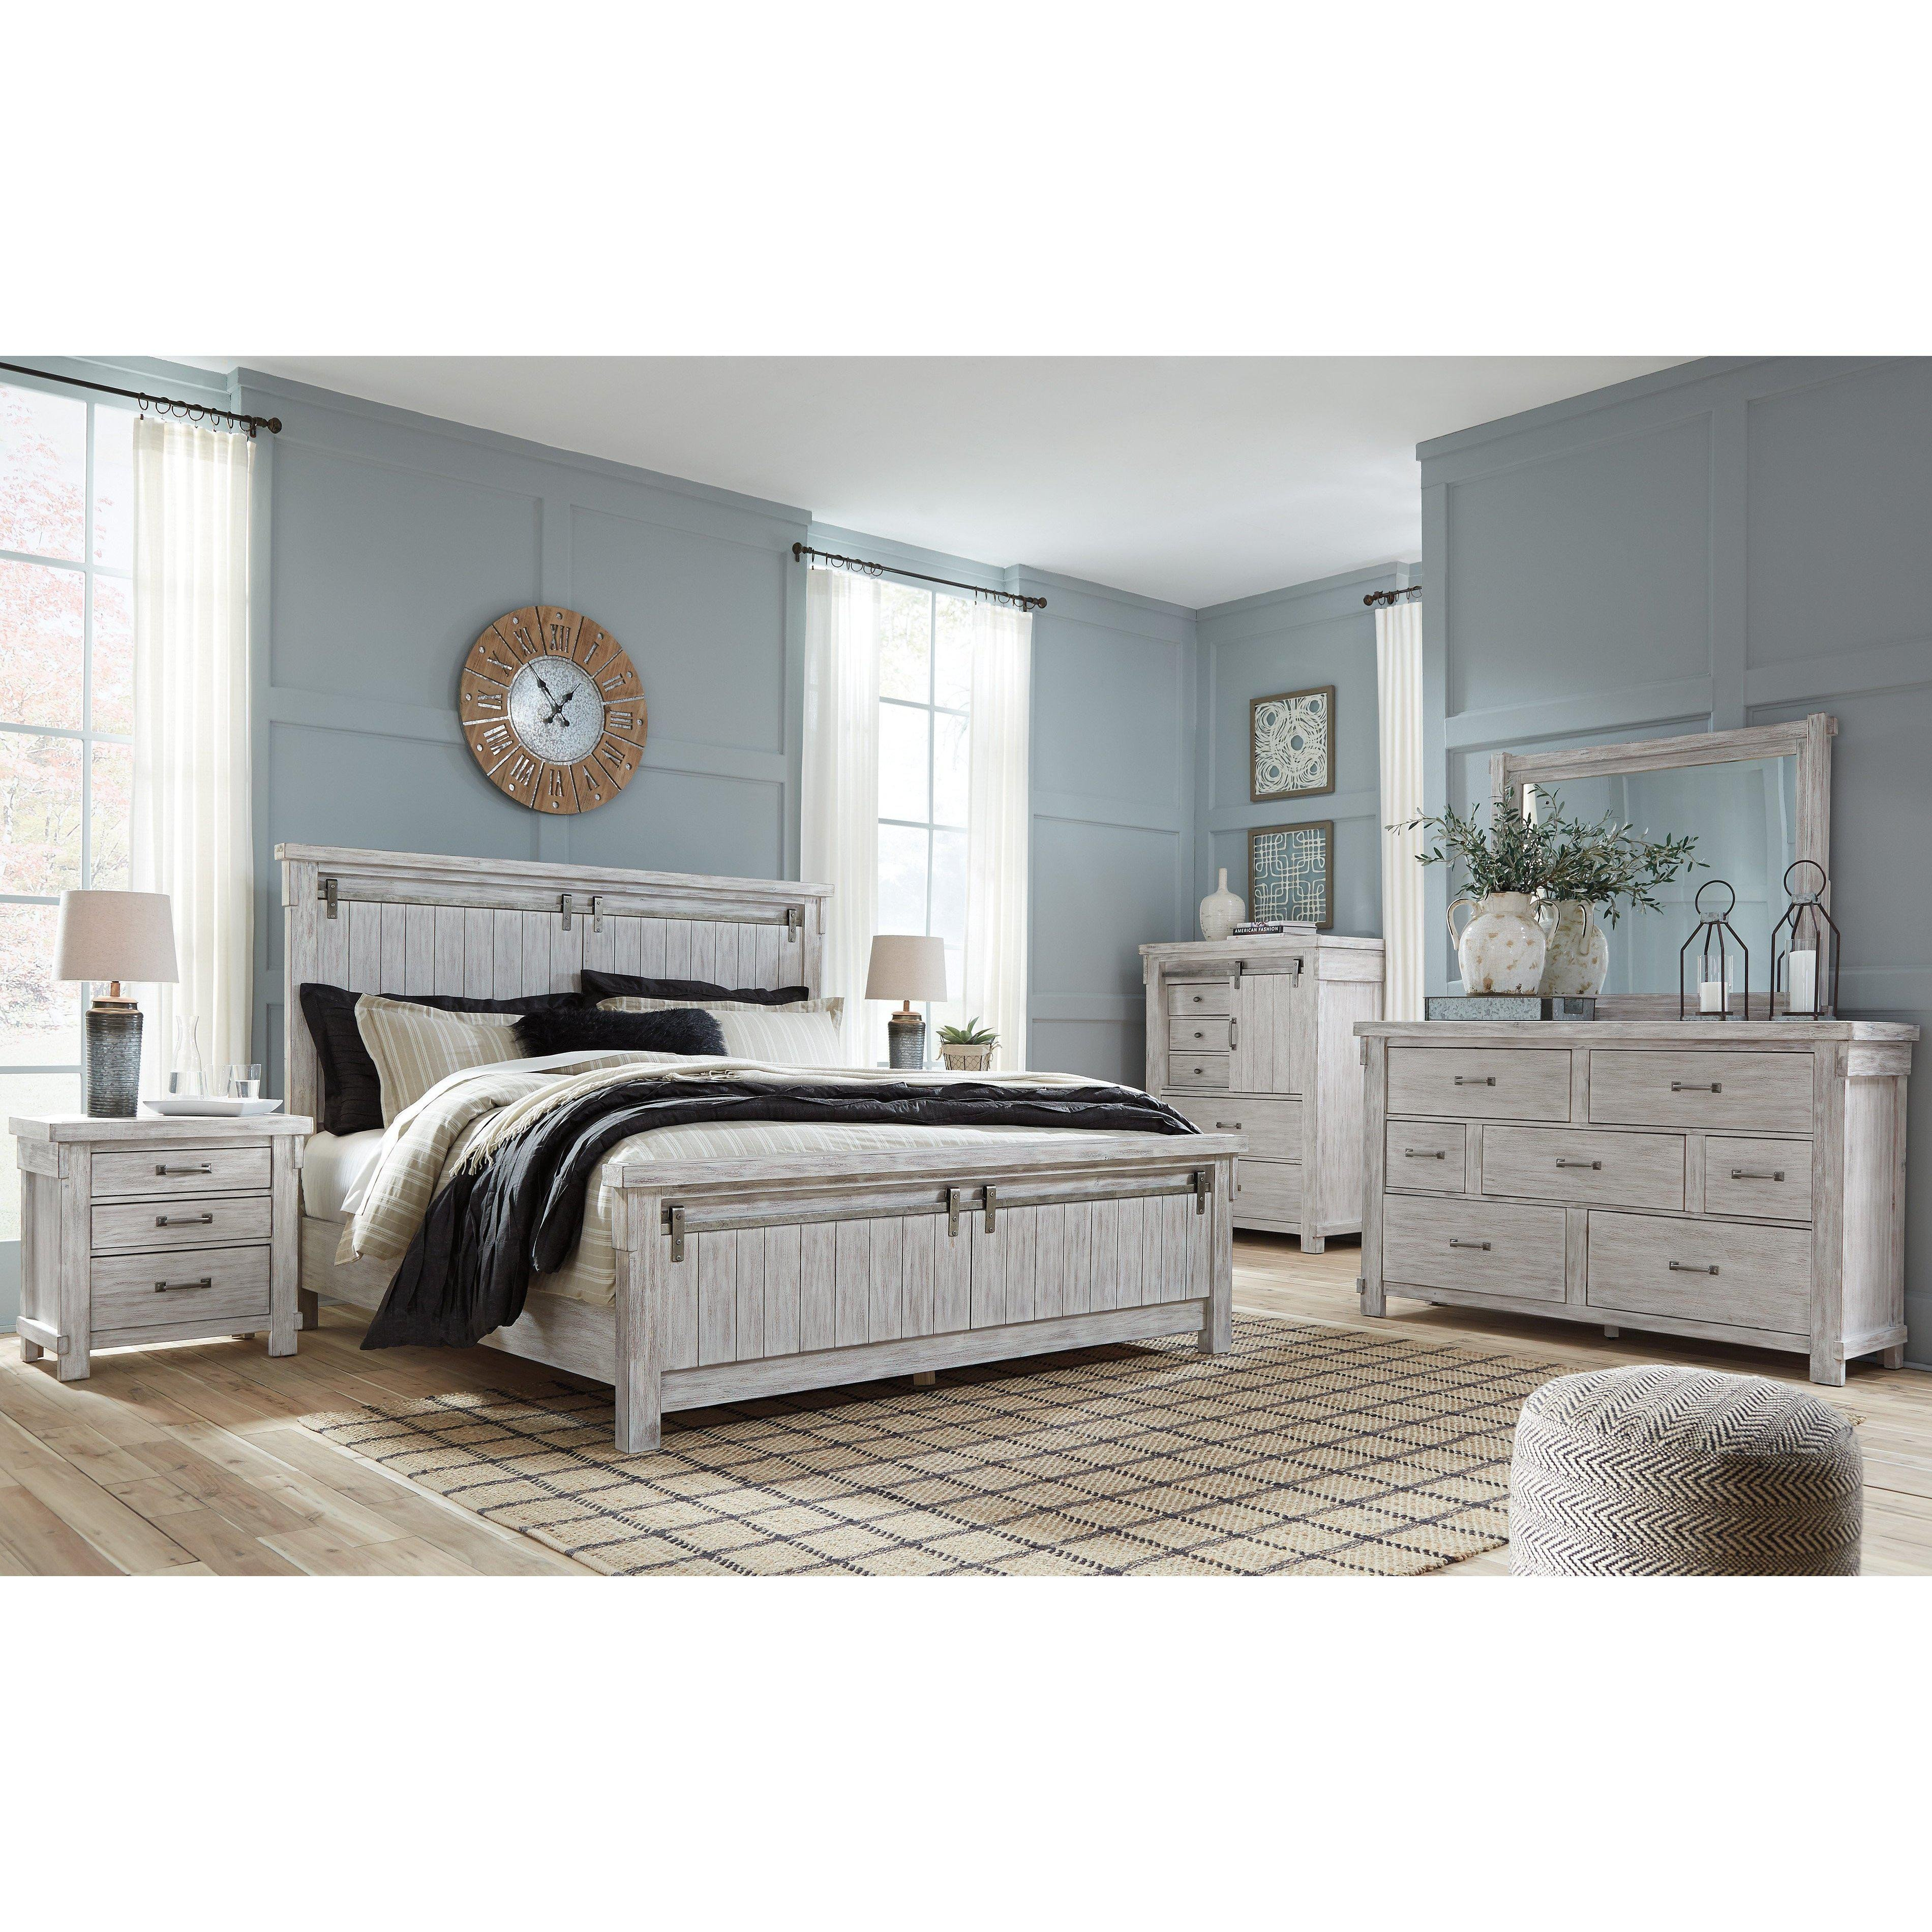 Bedroom Wall Units with Drawers Best Of Brashland Whitewash Bedroom Set